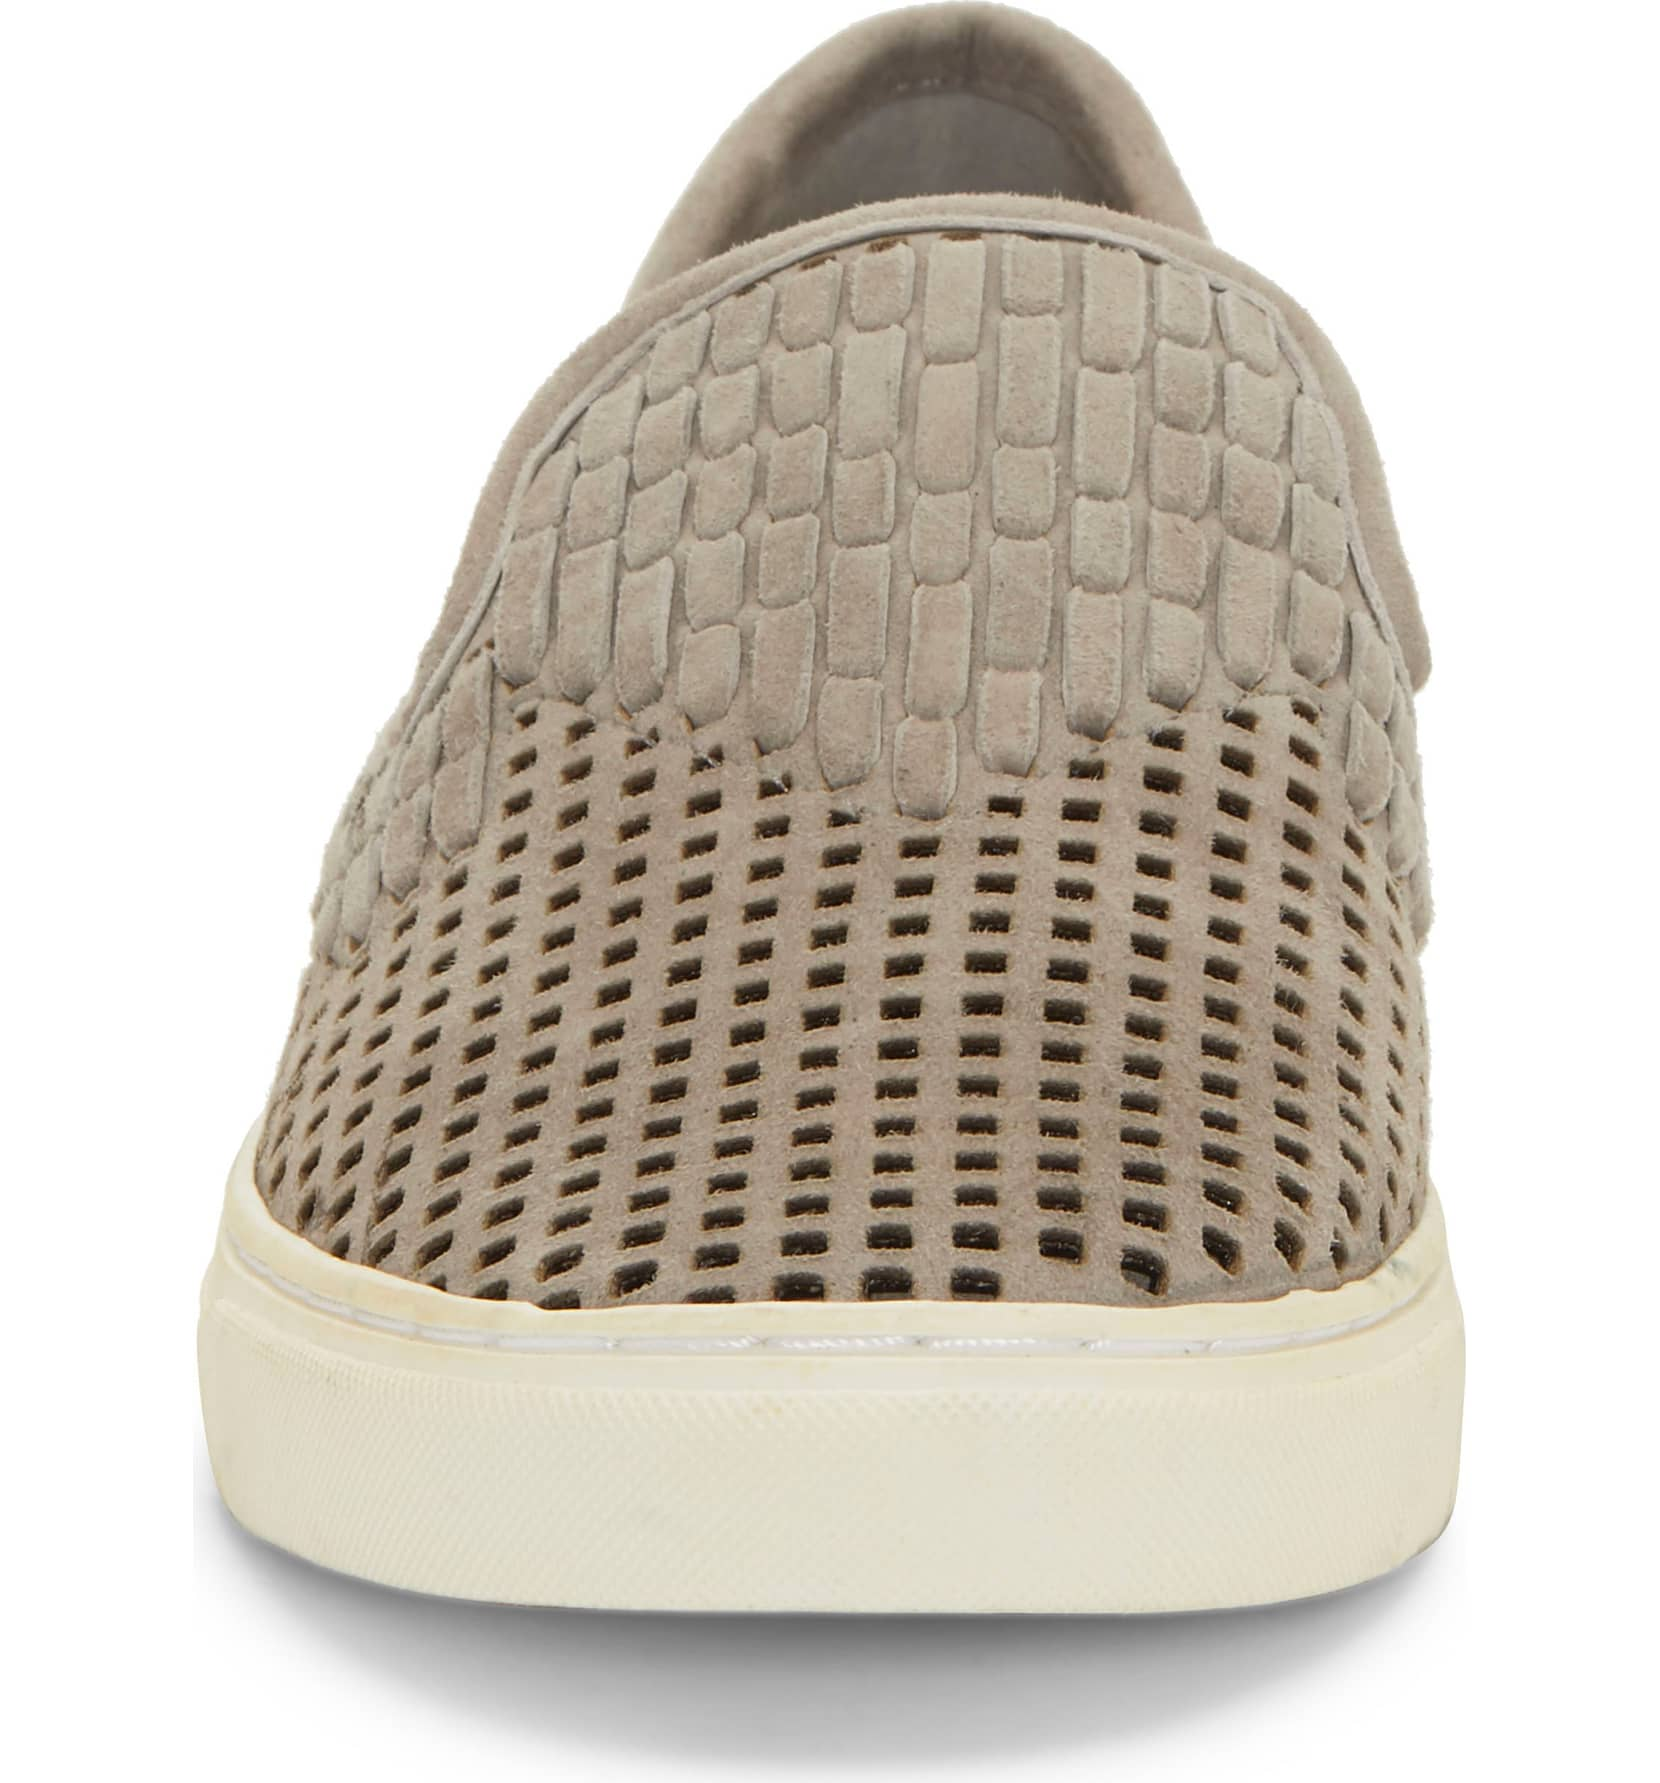 Vince-Camuto-Bristie-Storm-Grey-Leather-Woven-White-Sole-Slip-On-Sneakers thumbnail 39